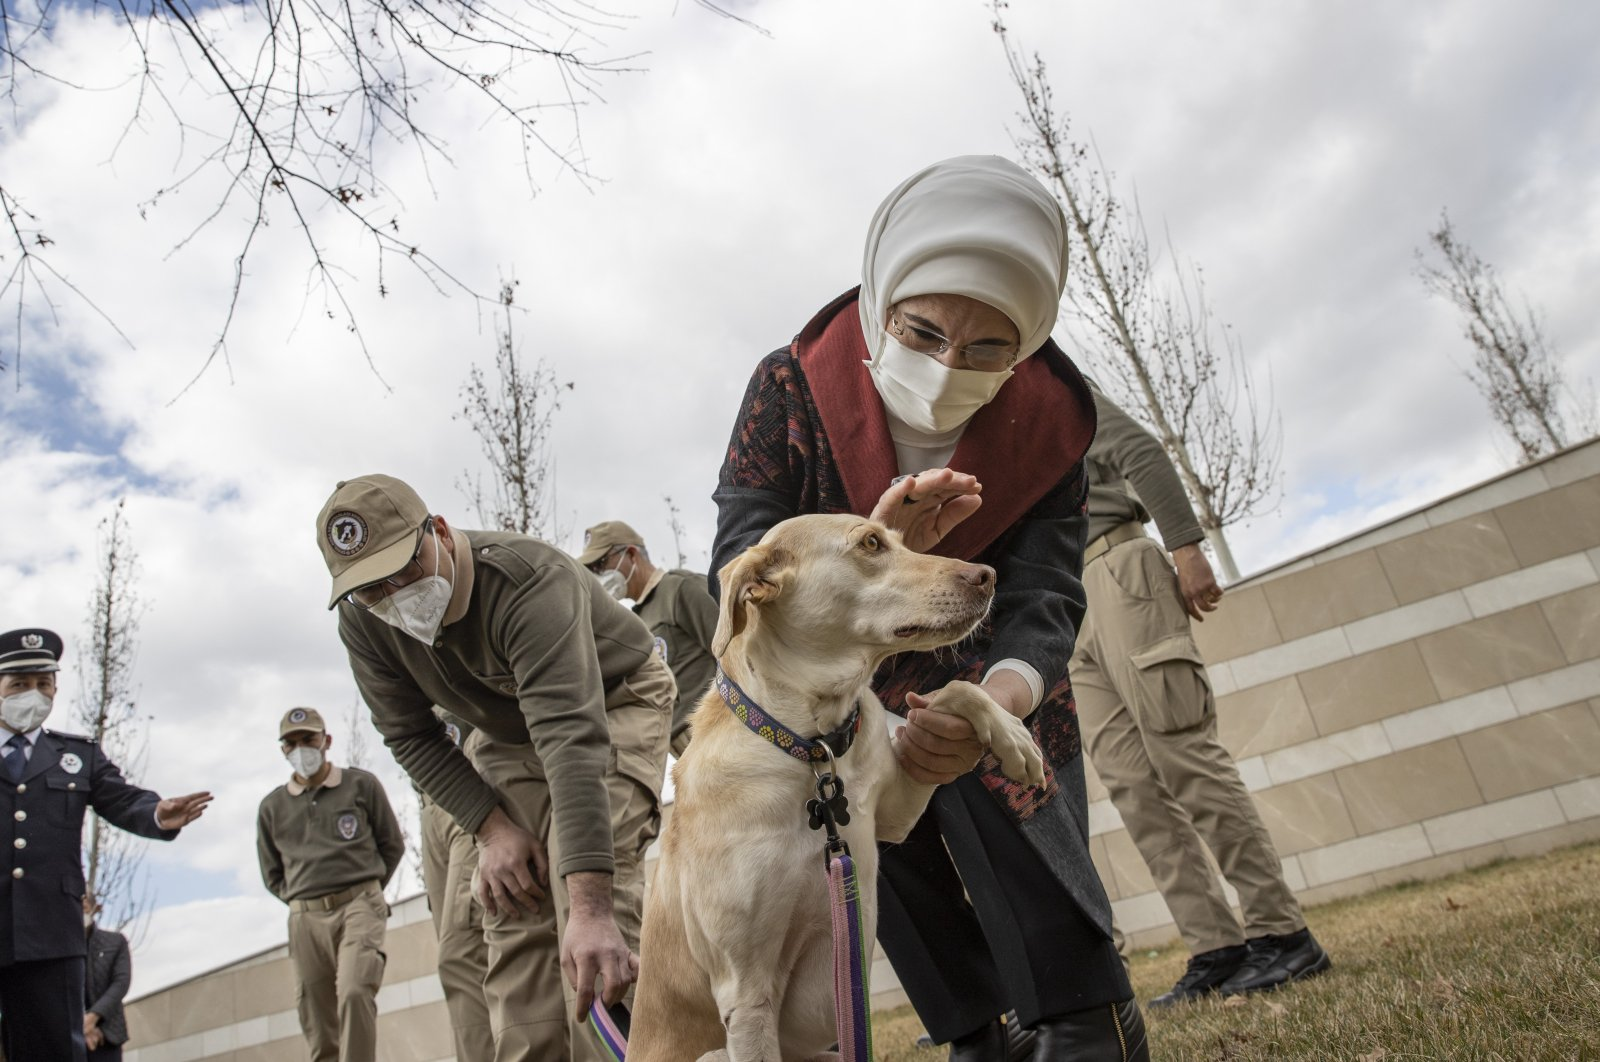 """First lady Emine Erdoğan pets her adopted dog, named """"Leblebi,"""" meaning """"roasted chickpea"""" in Turkish, as she delivers doghouses produced from the waste collected as part of the Zero Waste campaign during the construction of the Presidential Complex, in the garden of the Presidential Library, in the capital Ankara, Turkey, Feb. 10, 2021. (AA Photo)"""